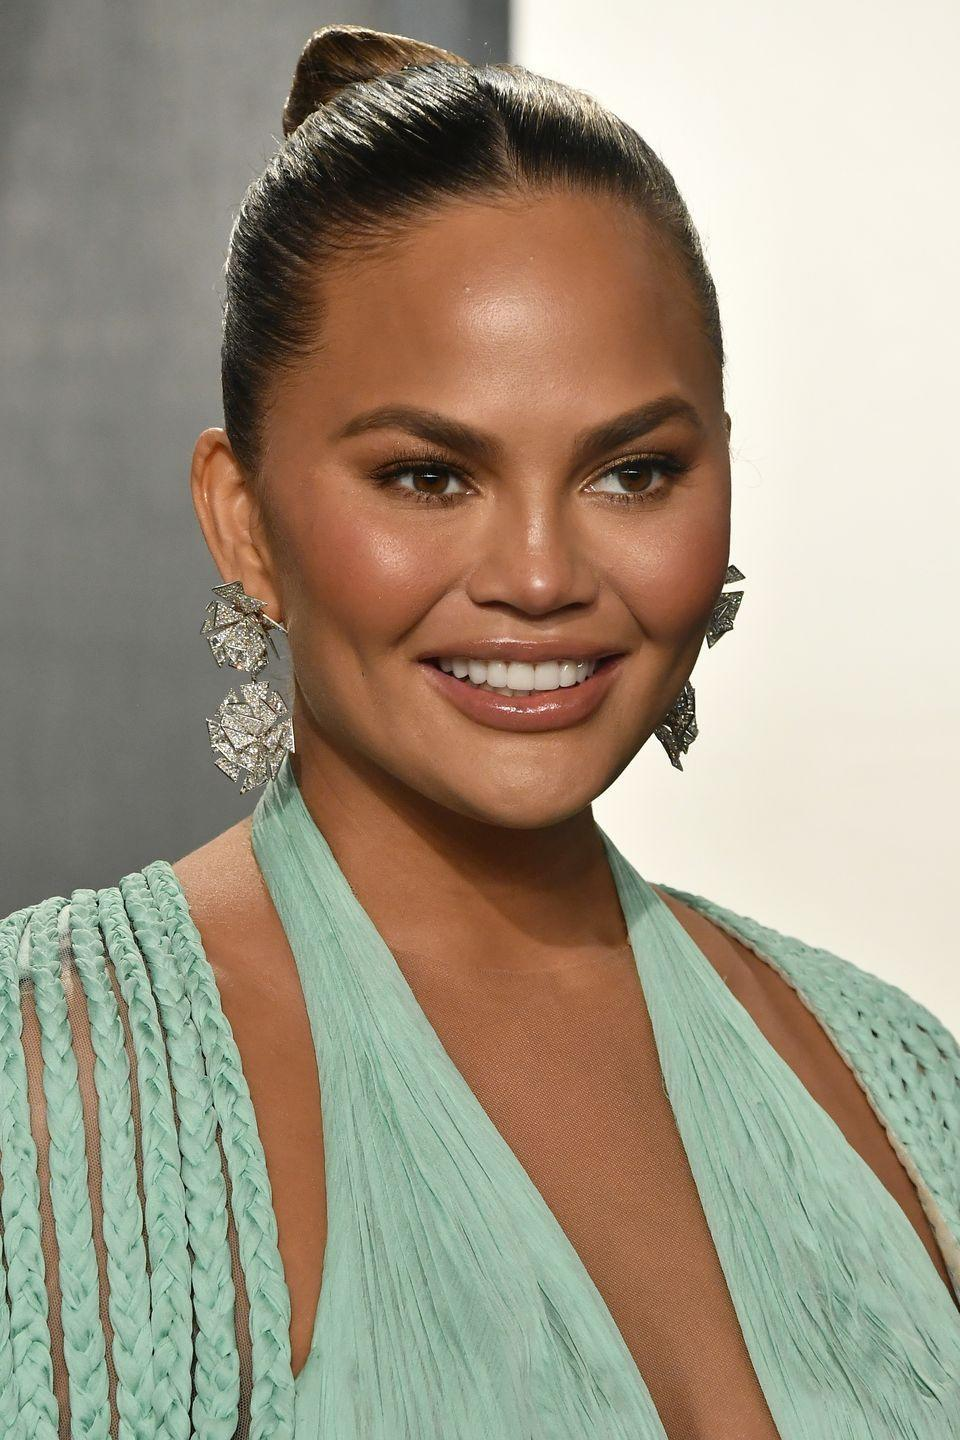 "<p>Chrissy Teigen has always taken a candid, open approach to social media, and cosmetic surgery isn't a conversation she has shied away from.</p><p>She recently revealed that she had undergone further surgery to remove her breast implants, posting a candid photo on <a href=""https://www.instagram.com/p/CMV8P81Bwp5/"" rel=""nofollow noopener"" target=""_blank"" data-ylk=""slk:Instagram"" class=""link rapid-noclick-resp"">Instagram</a> about the experience. While her trademark full cheeks, she assures us, are her own, she has had liposuction on her armpits too, about which she has ""no regrets, except it came back"".</p>"